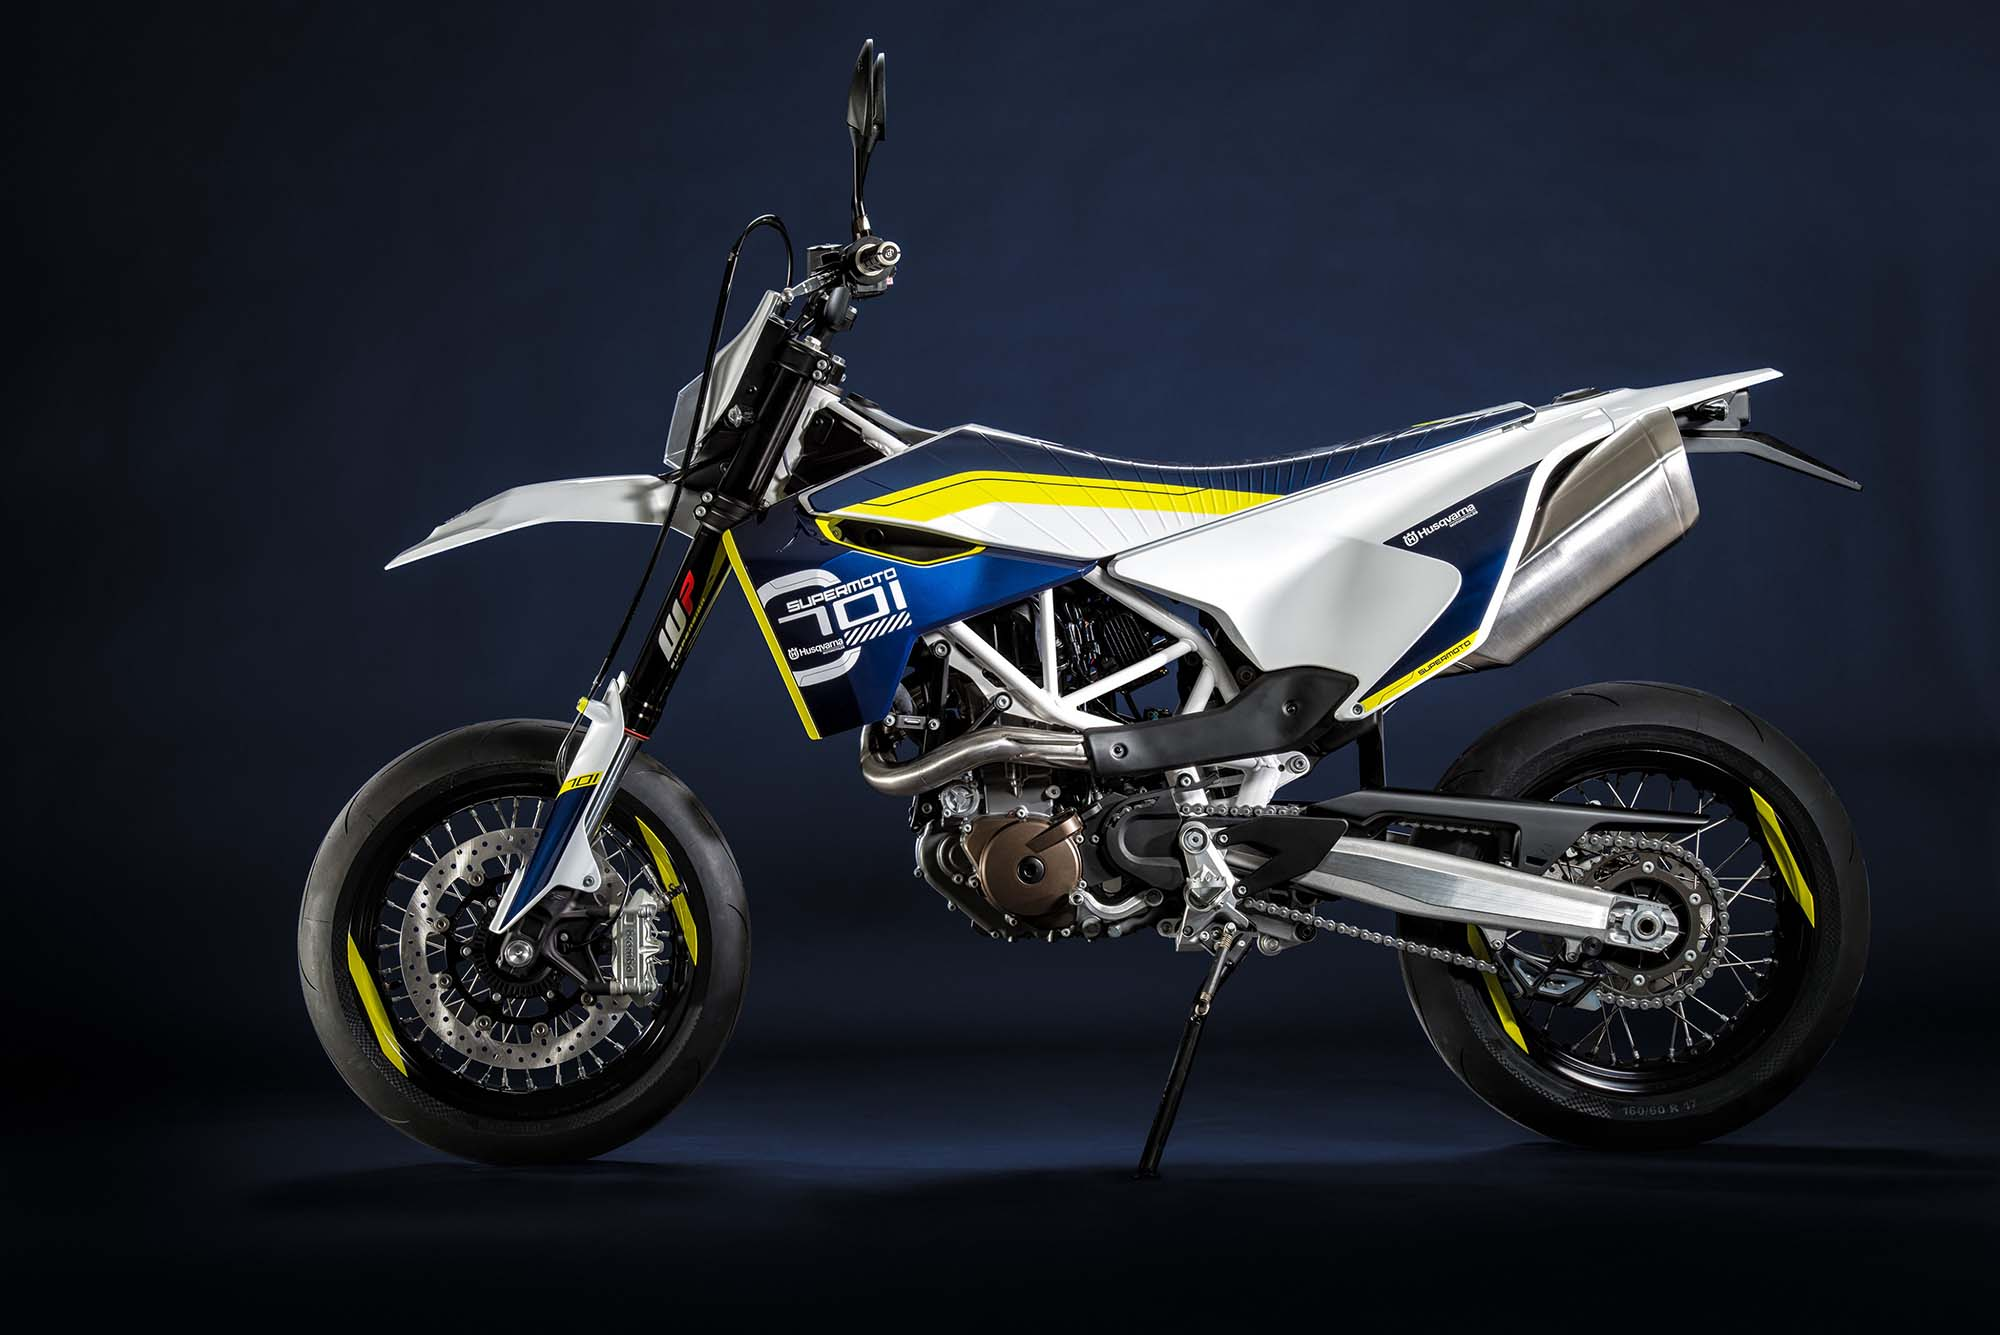 Accessoire Deco Of 2016 Husqvarna 701 Supermoto 690cc Of Street Hooligan